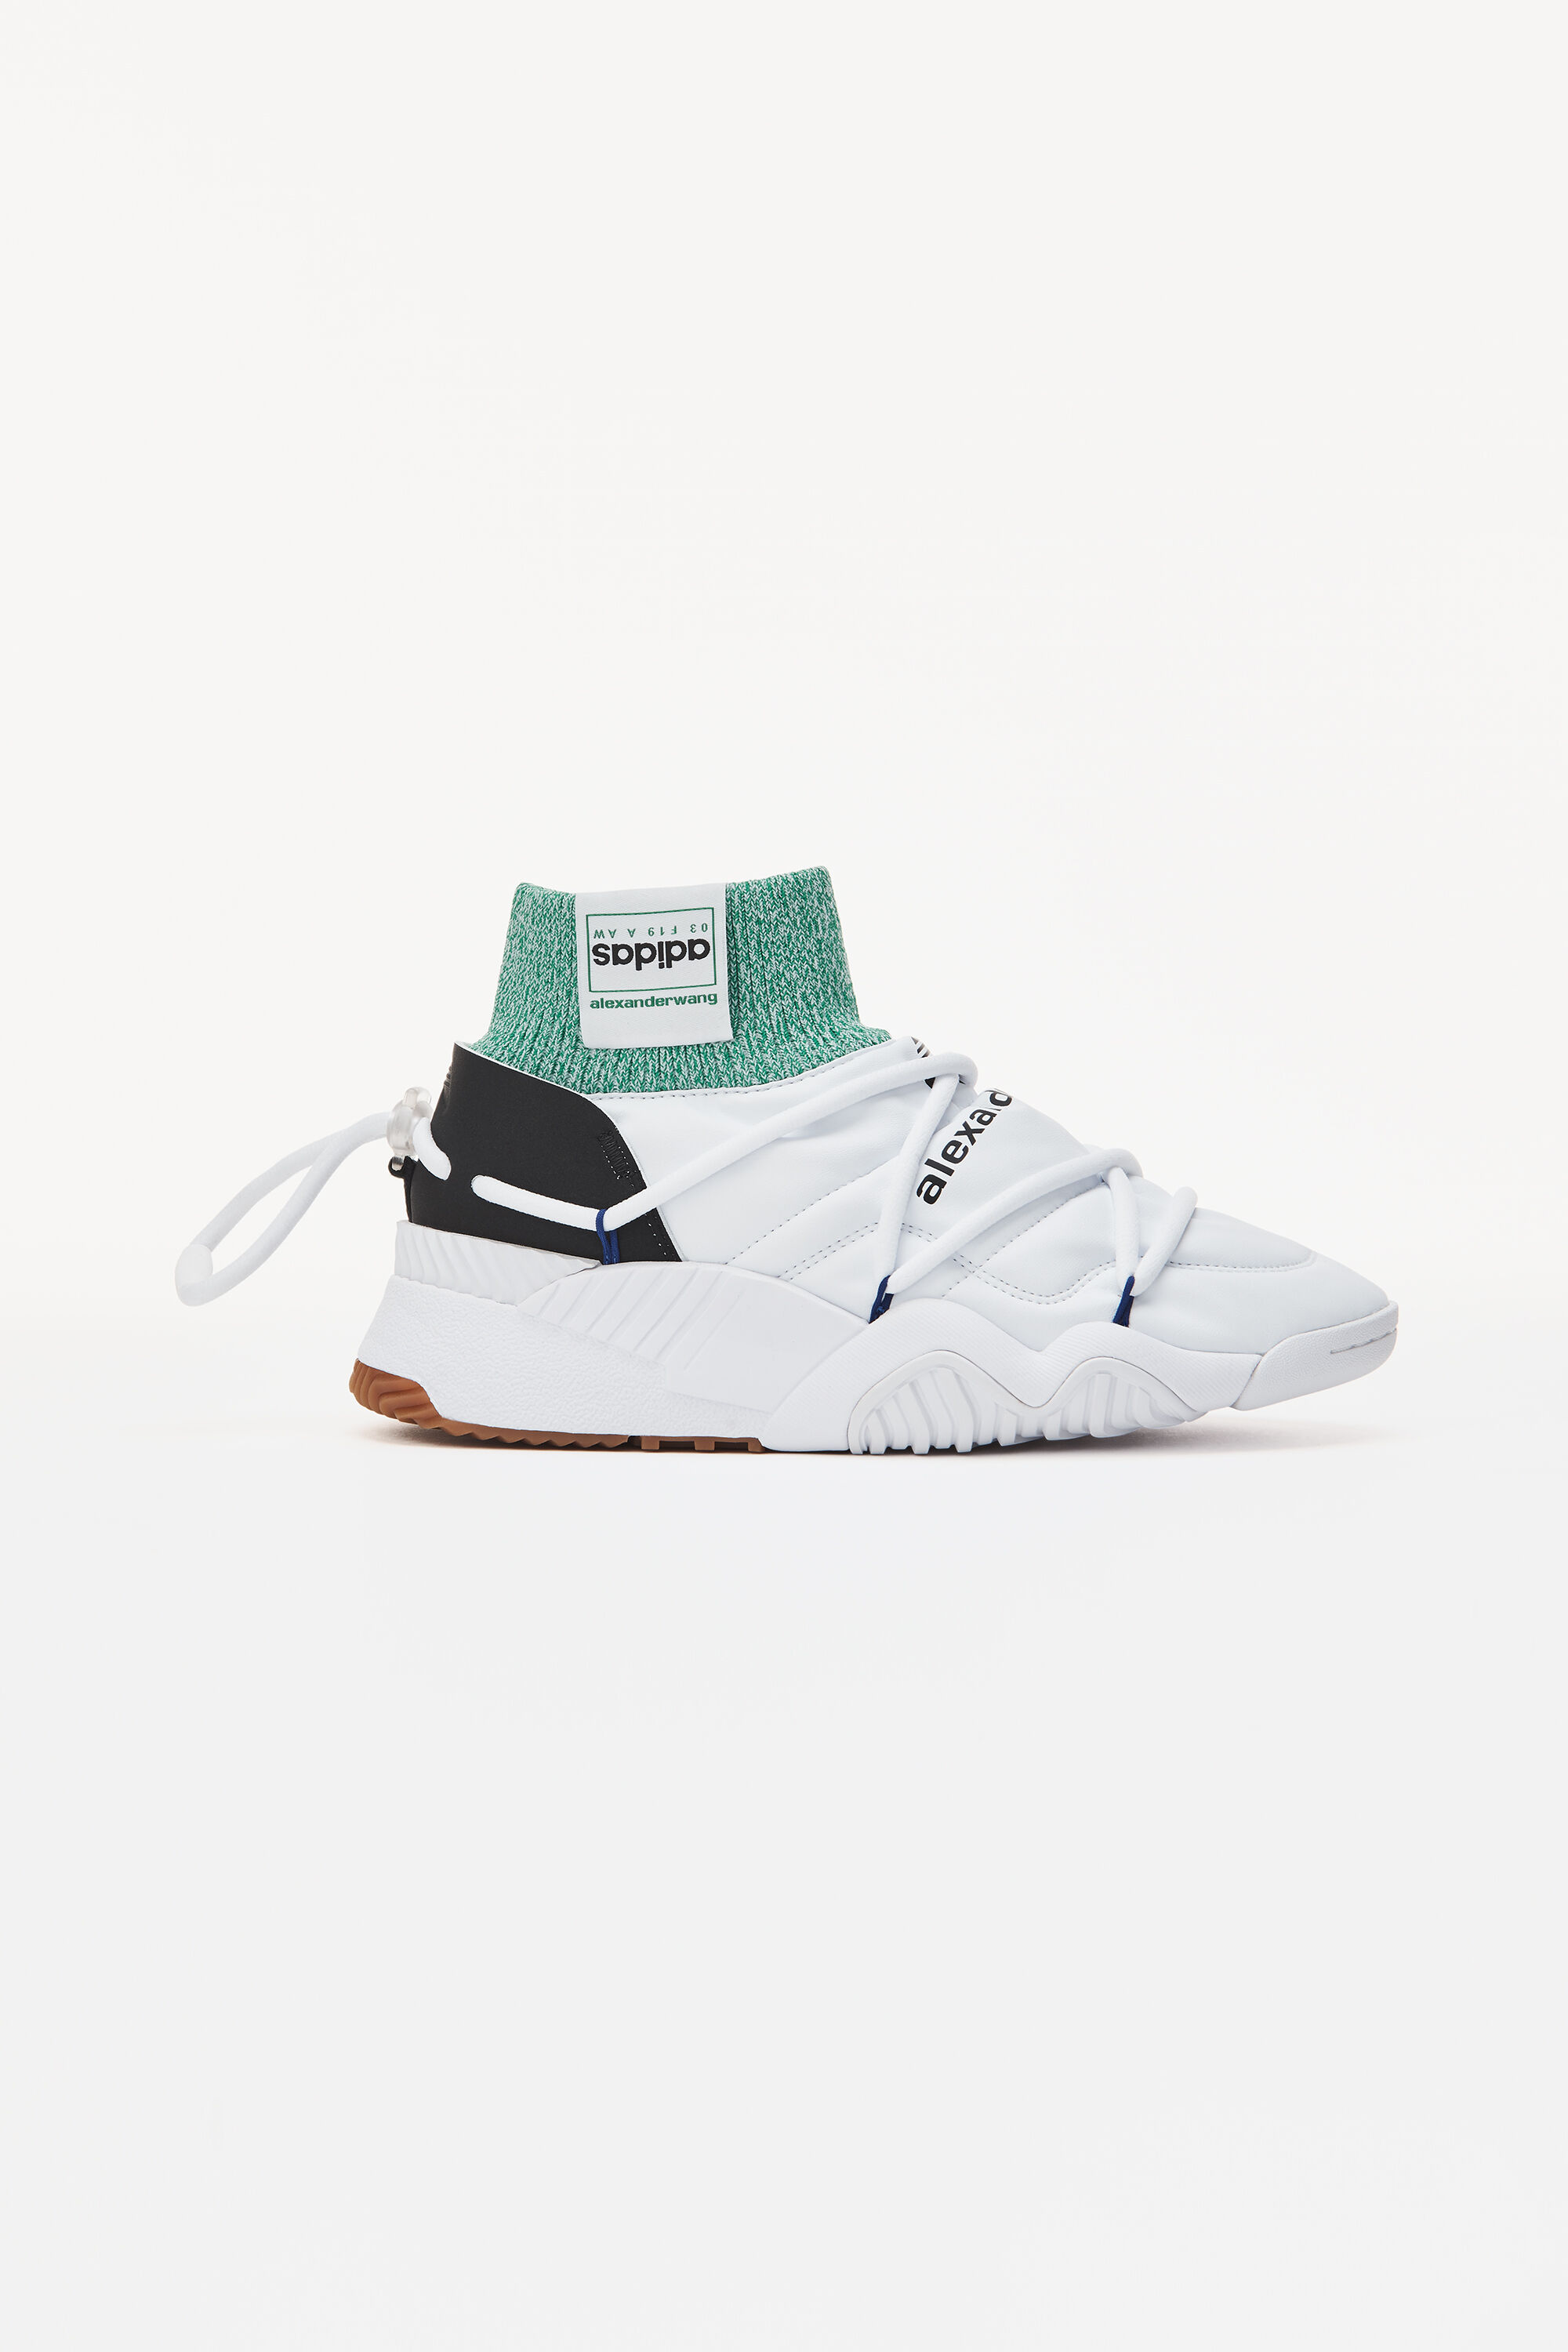 adidas Originals by Alexander Wang season 6 | alexanderwang